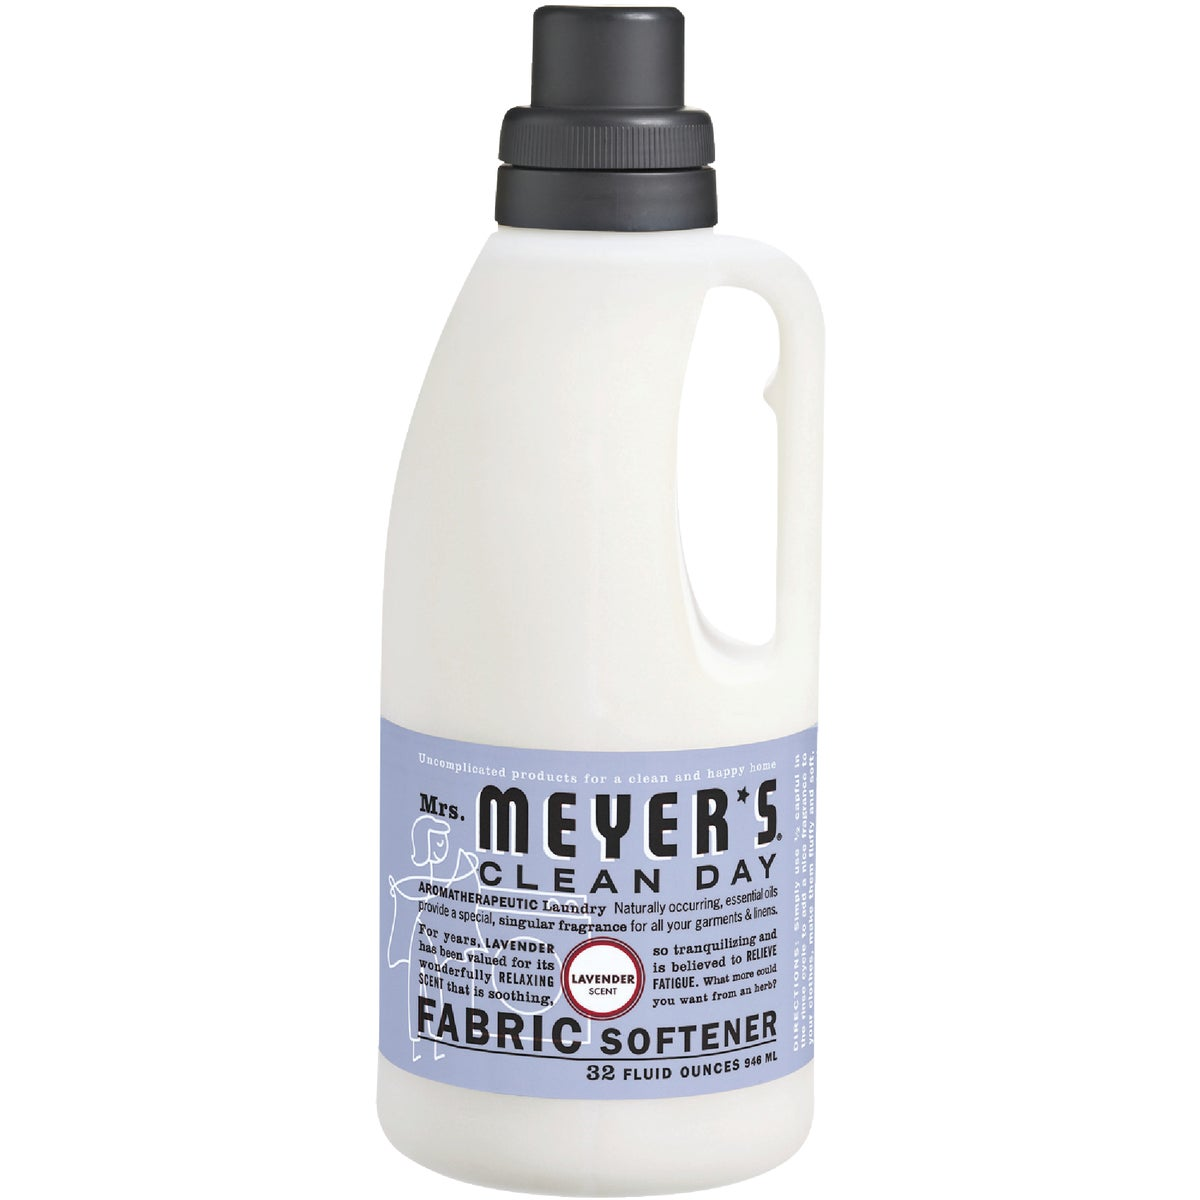 LAVENDER FABRIC SOFTENER - 14134 by Mrs Meyers Clean Day